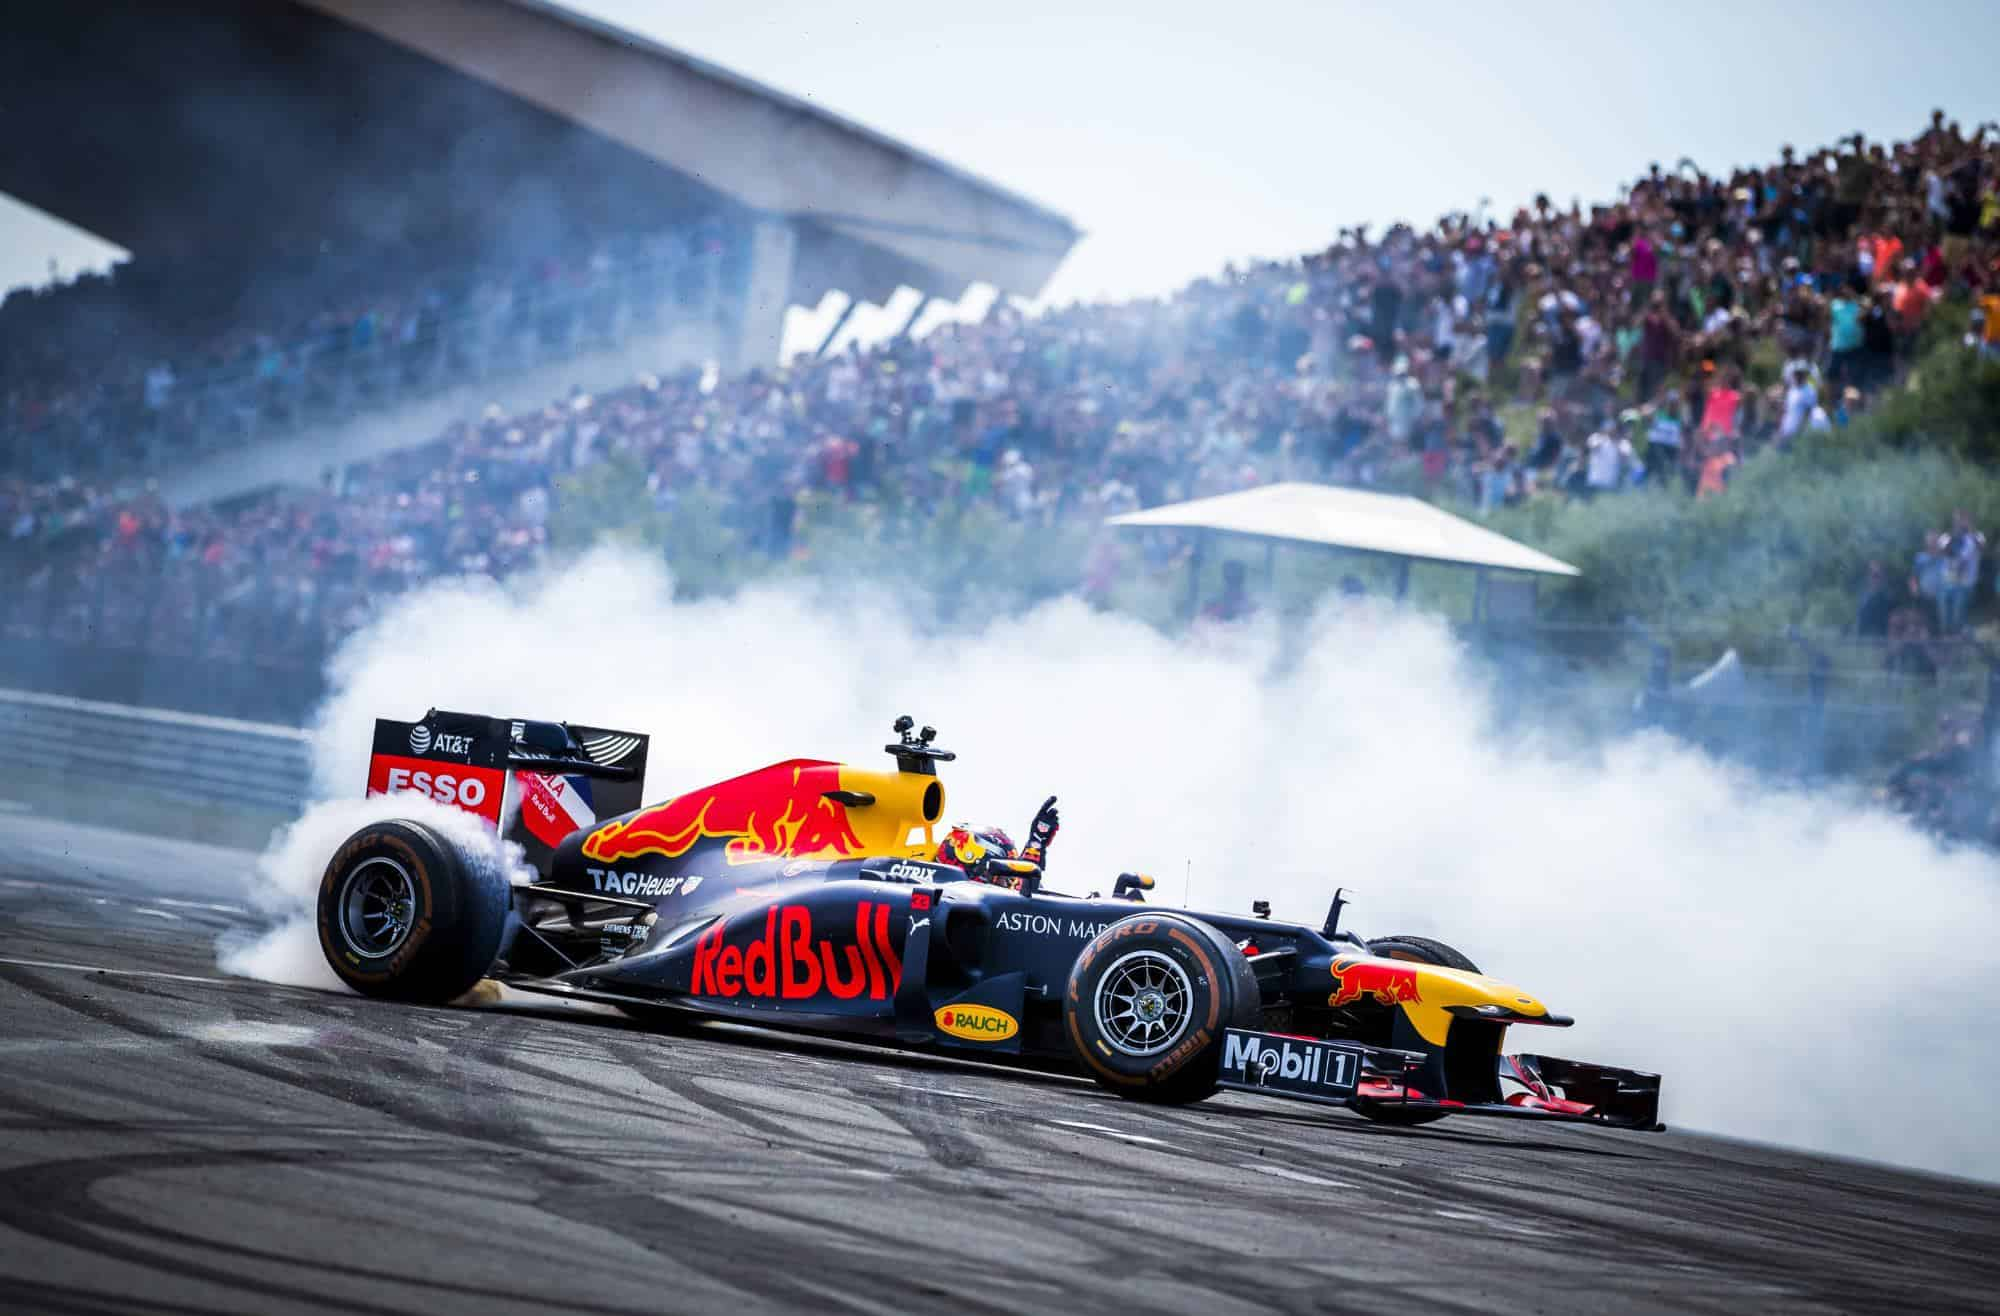 Max Verstappen Zandvoort F1 Red Bull demonstration Dutch GP